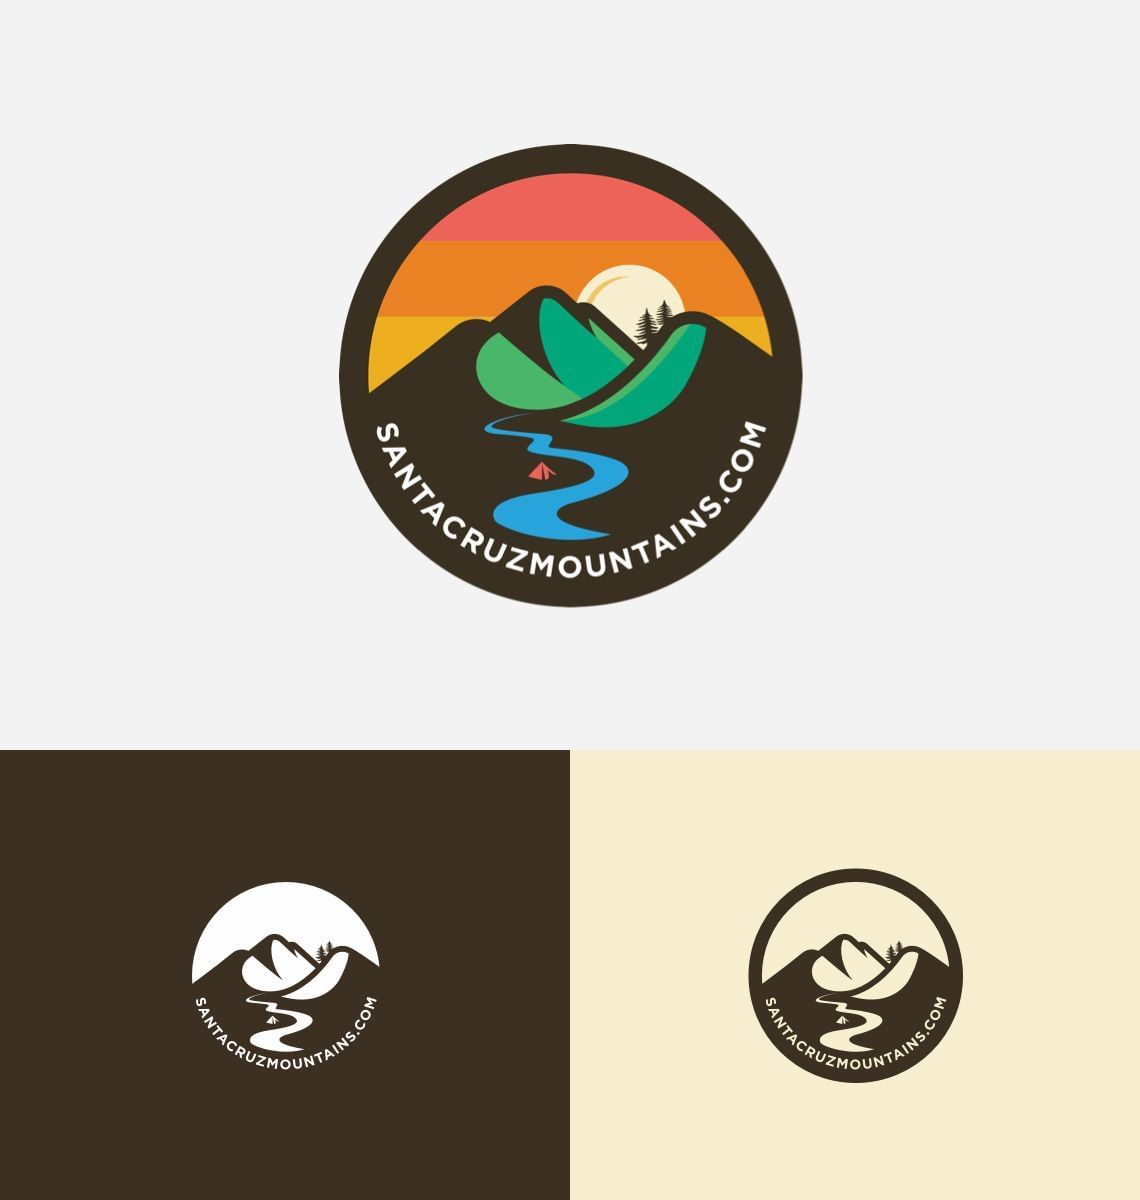 Santa Cruz Mountains - Logo